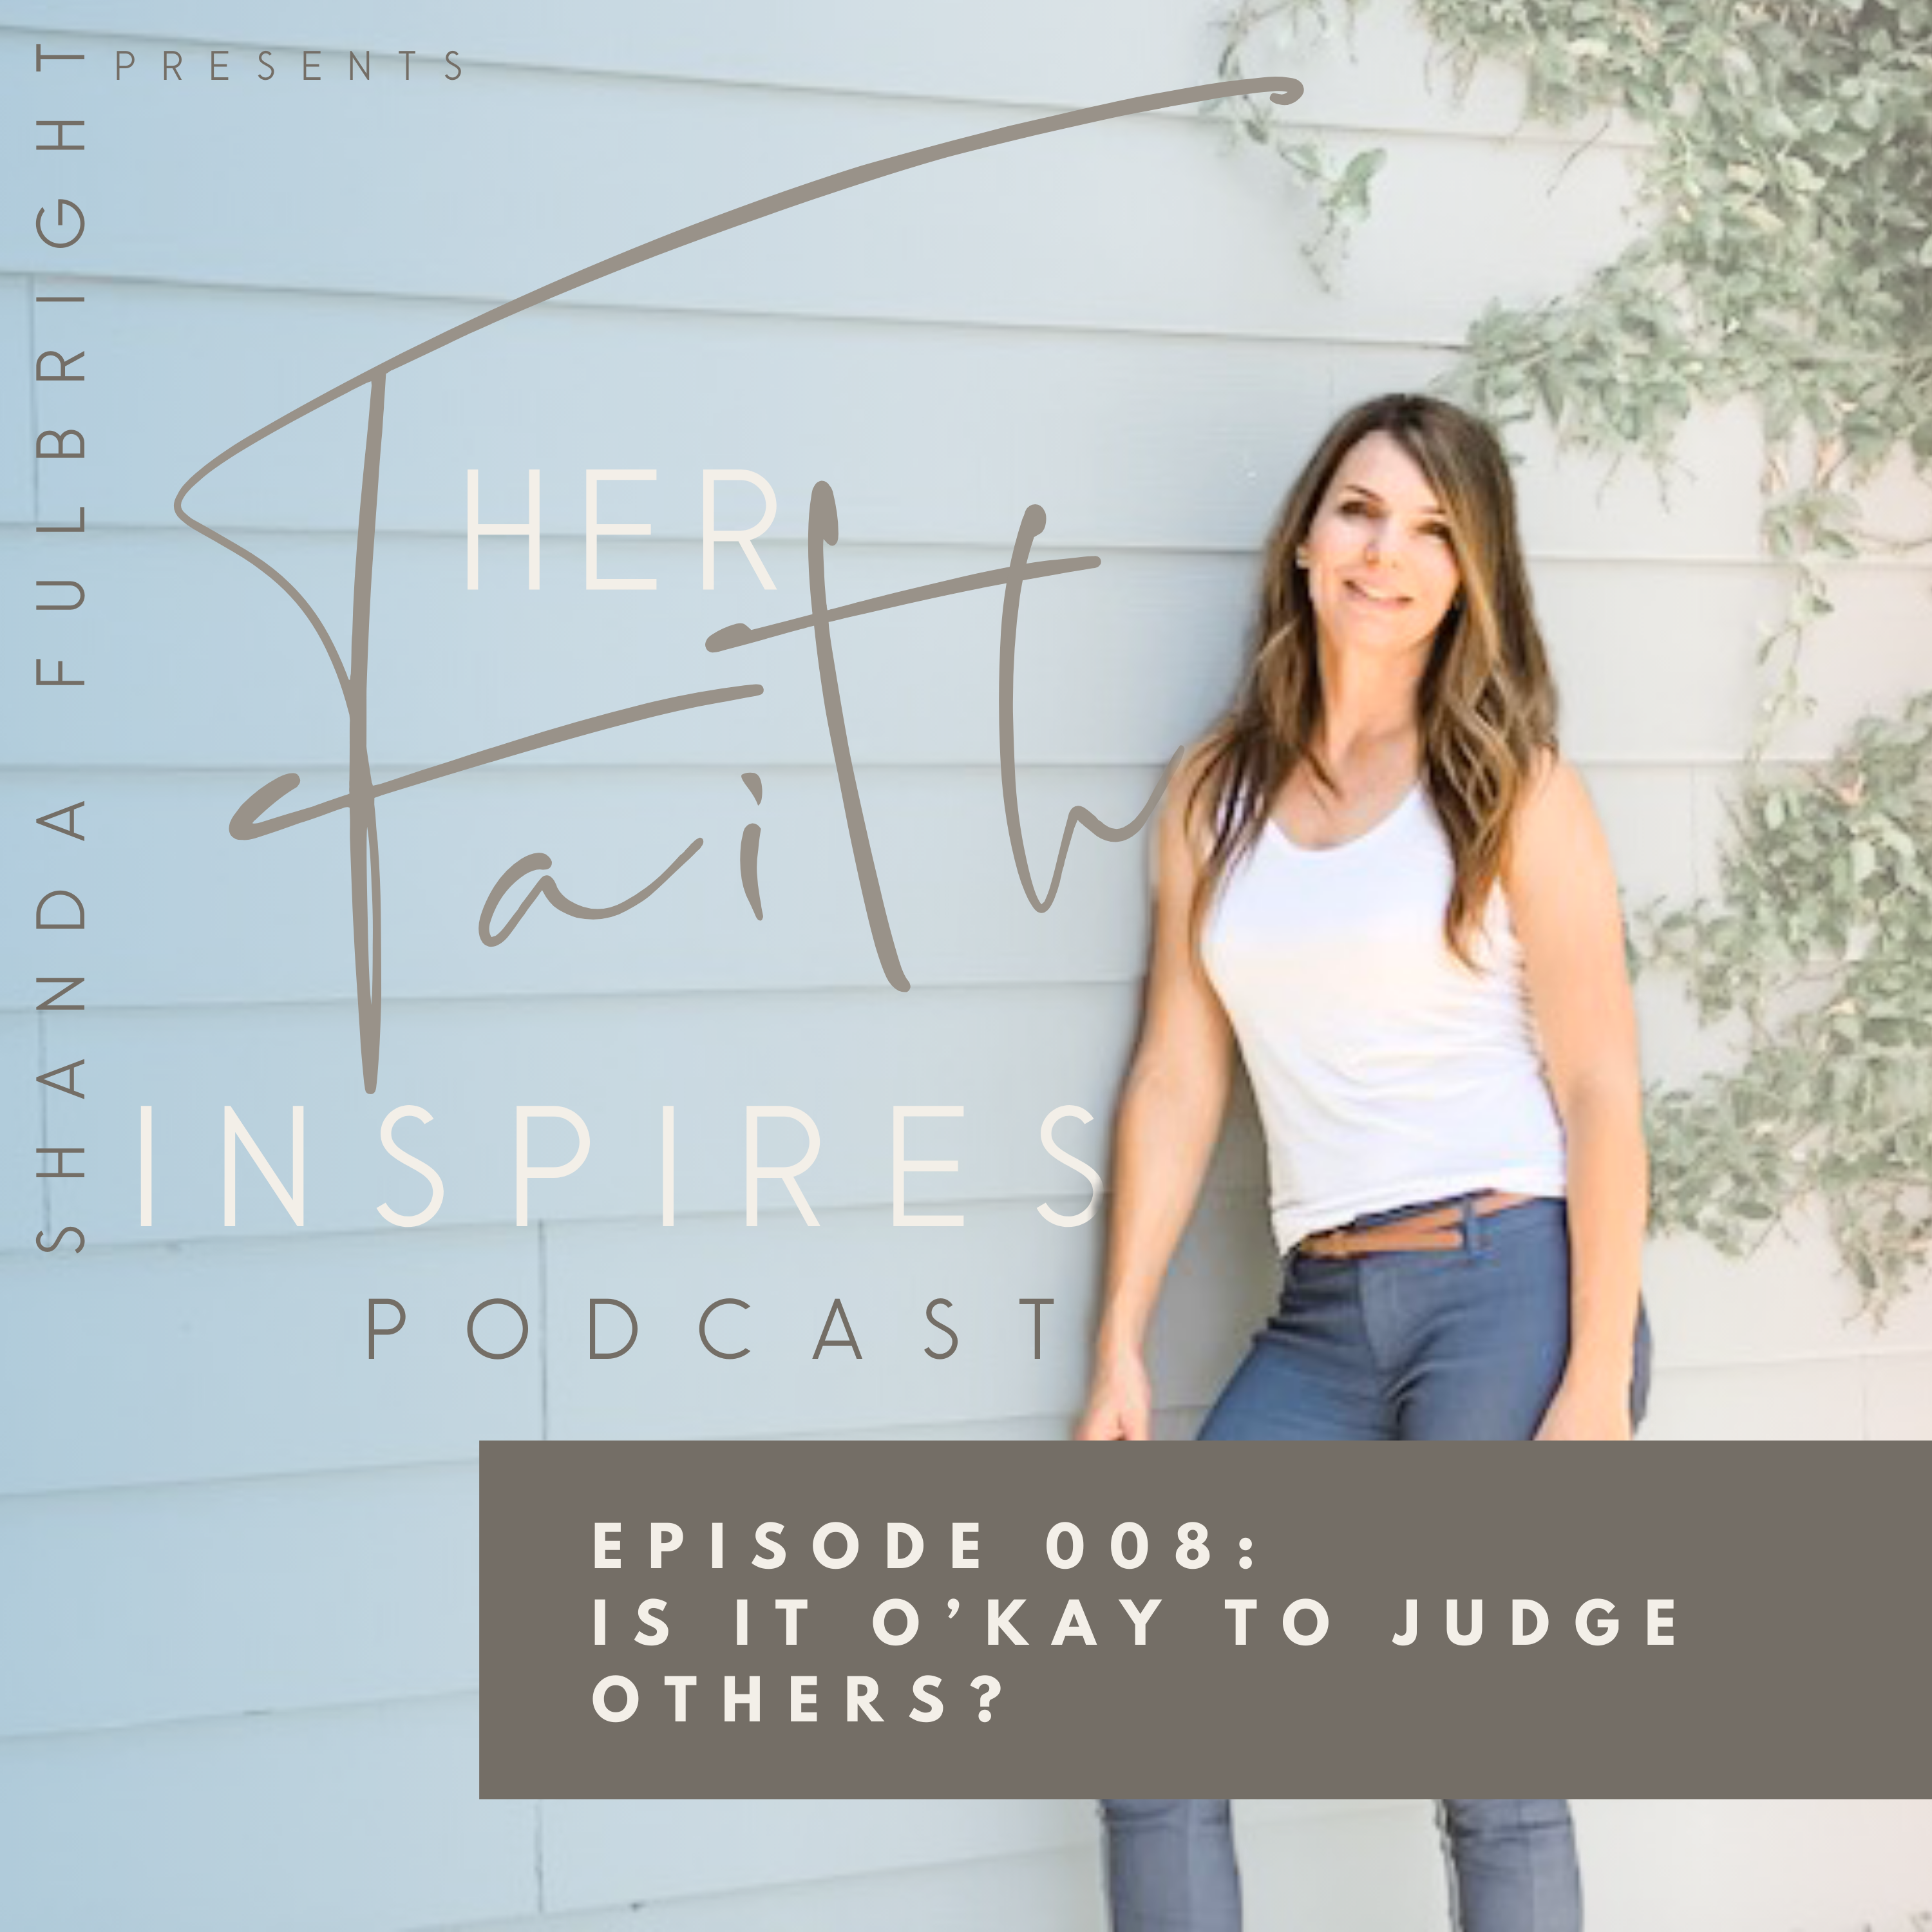 Her Faith Inspires 8 - Her Faith Inspires 008: Is it o'kay to judge others?